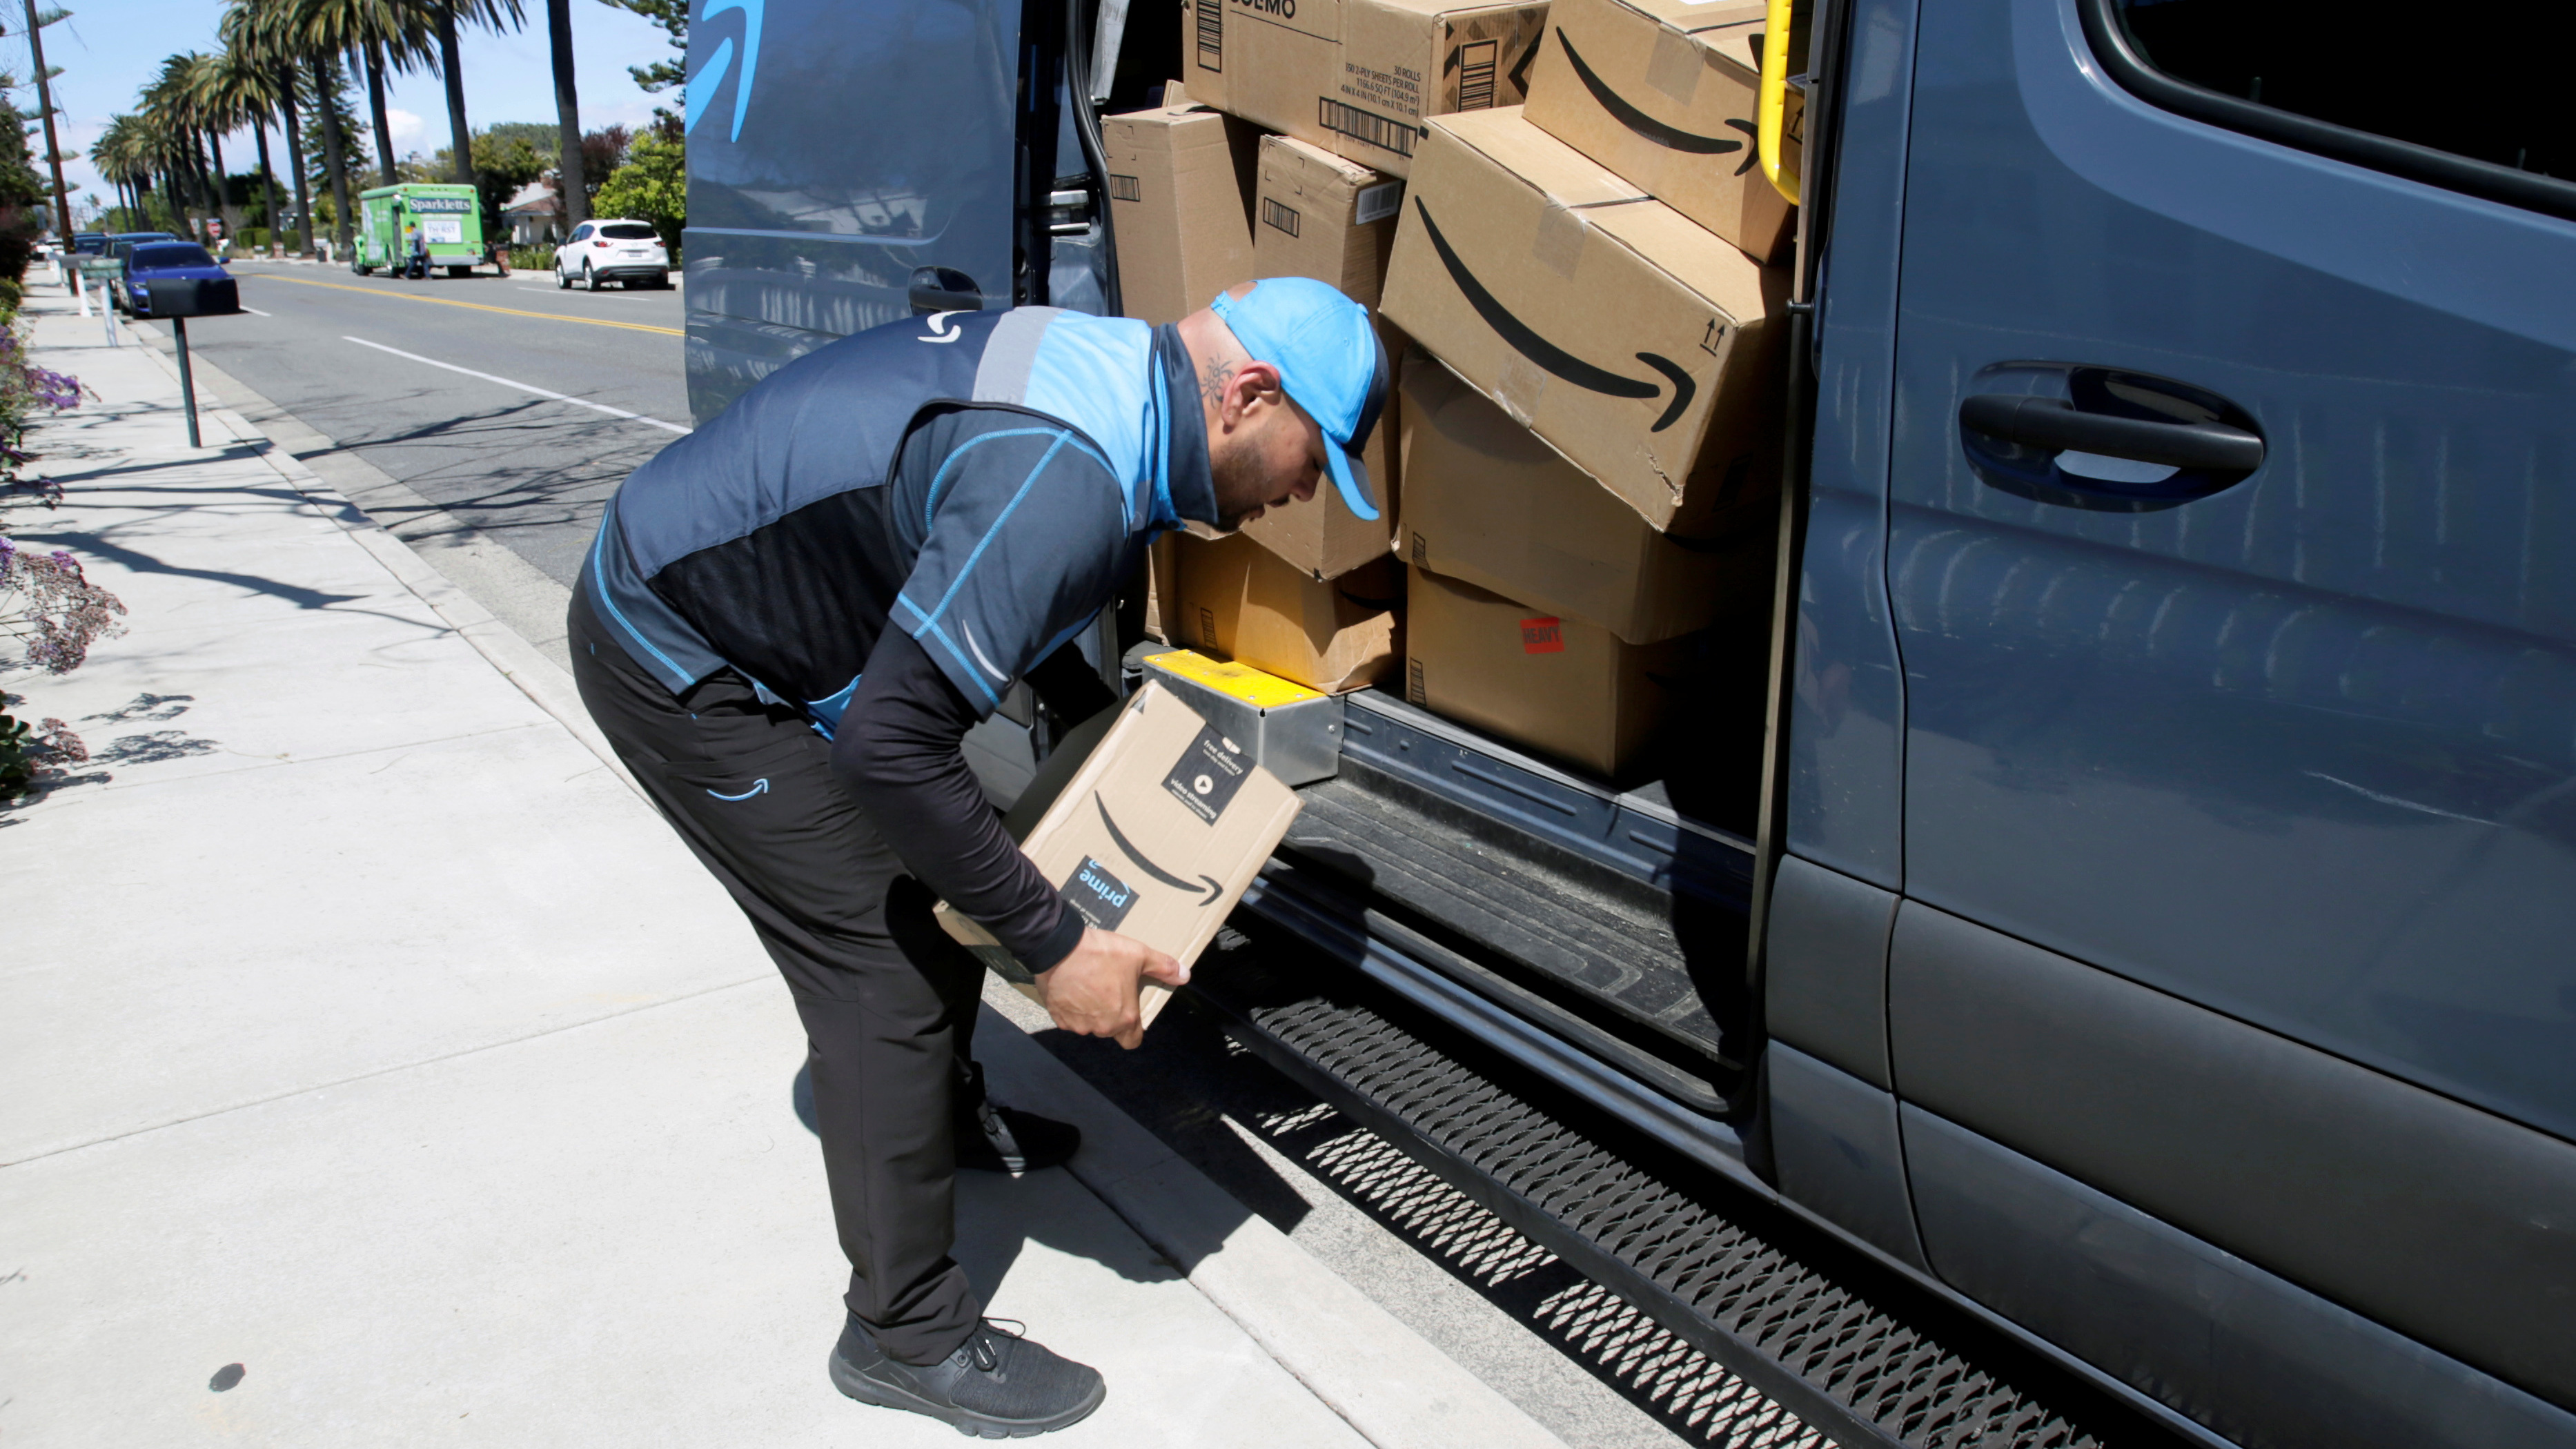 Joseph Alvarado picks up a package while making deliveries for Amazon during the outbreak of the coronavirus disease